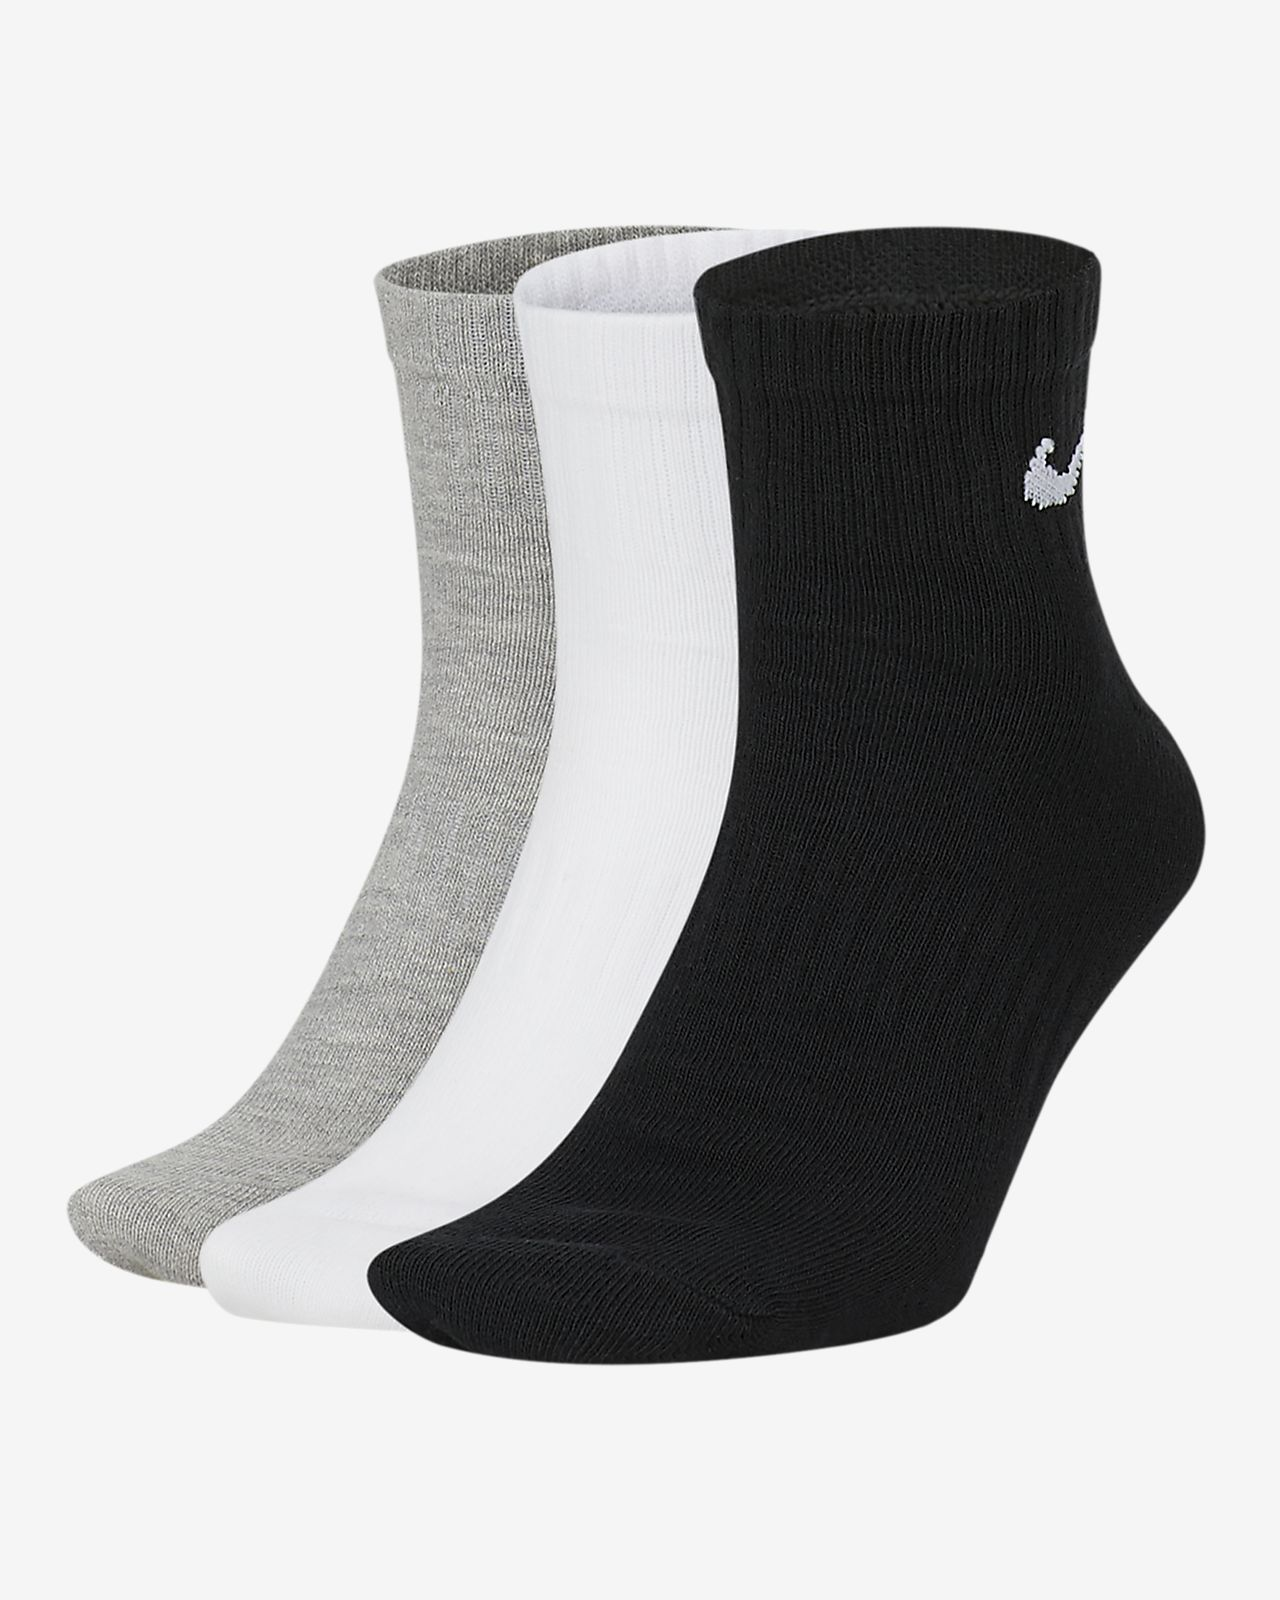 Nike Everyday Lightweight Ankle Training Socks (3 Pair)